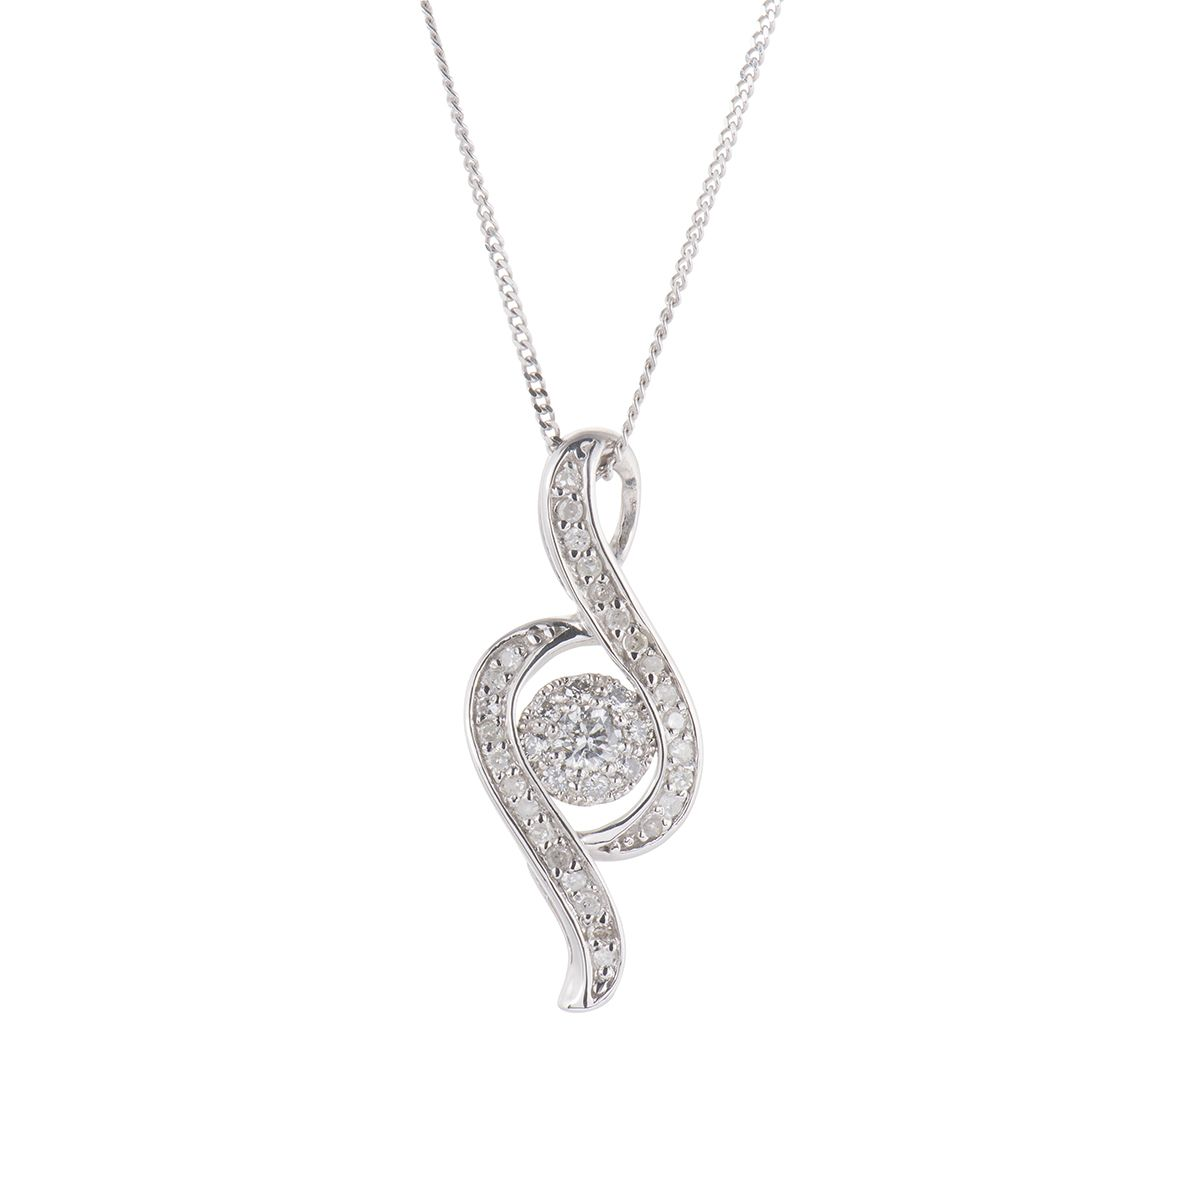 amazon cubic swirl com sterling pendant journey necklace jewelry silver dp zirconia